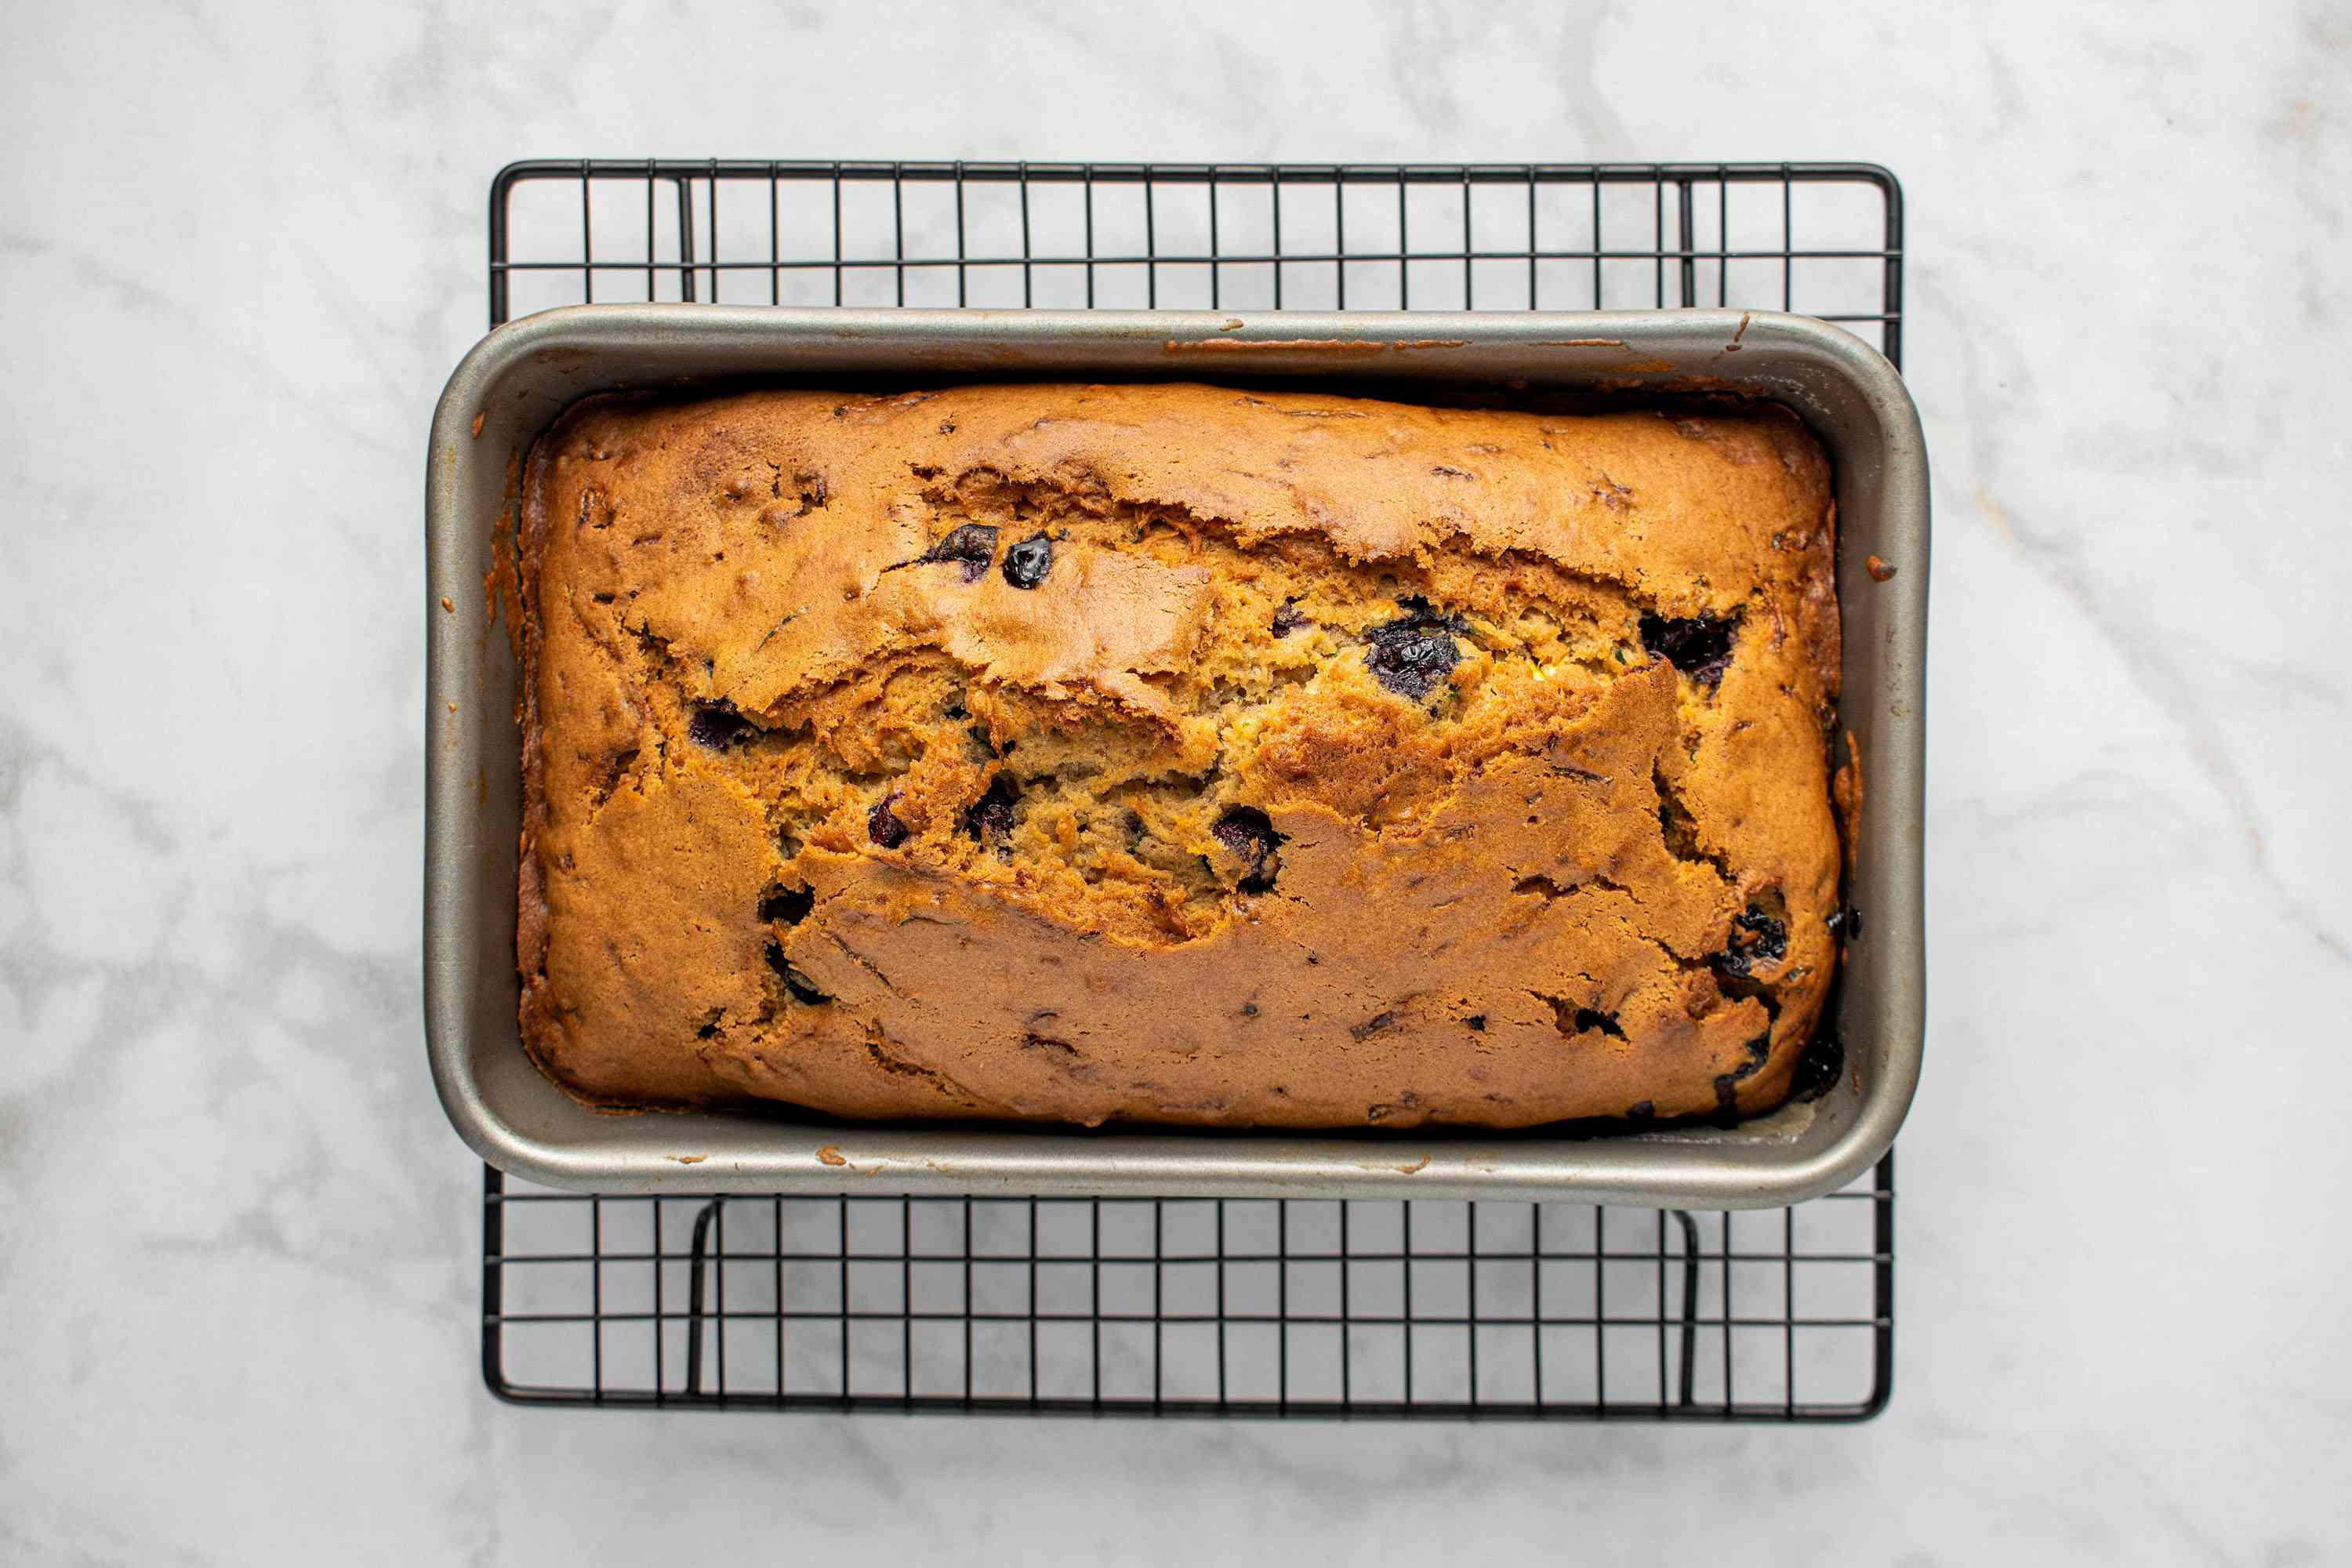 Blueberry and Zucchini Quick Bread on a cooling rack